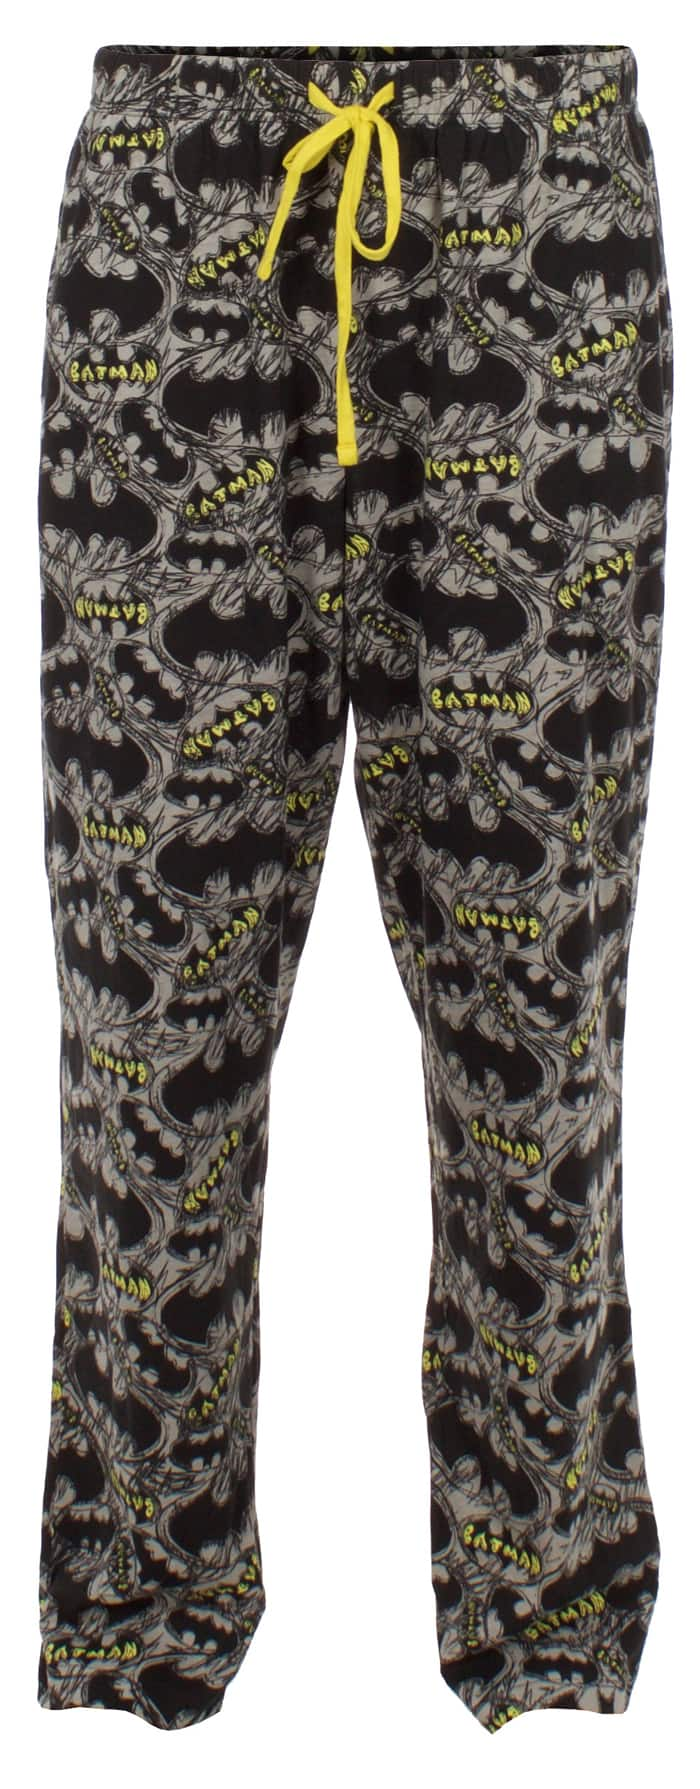 batman glow in the dark lounge pants - $2.97 YMMV GameStop.com